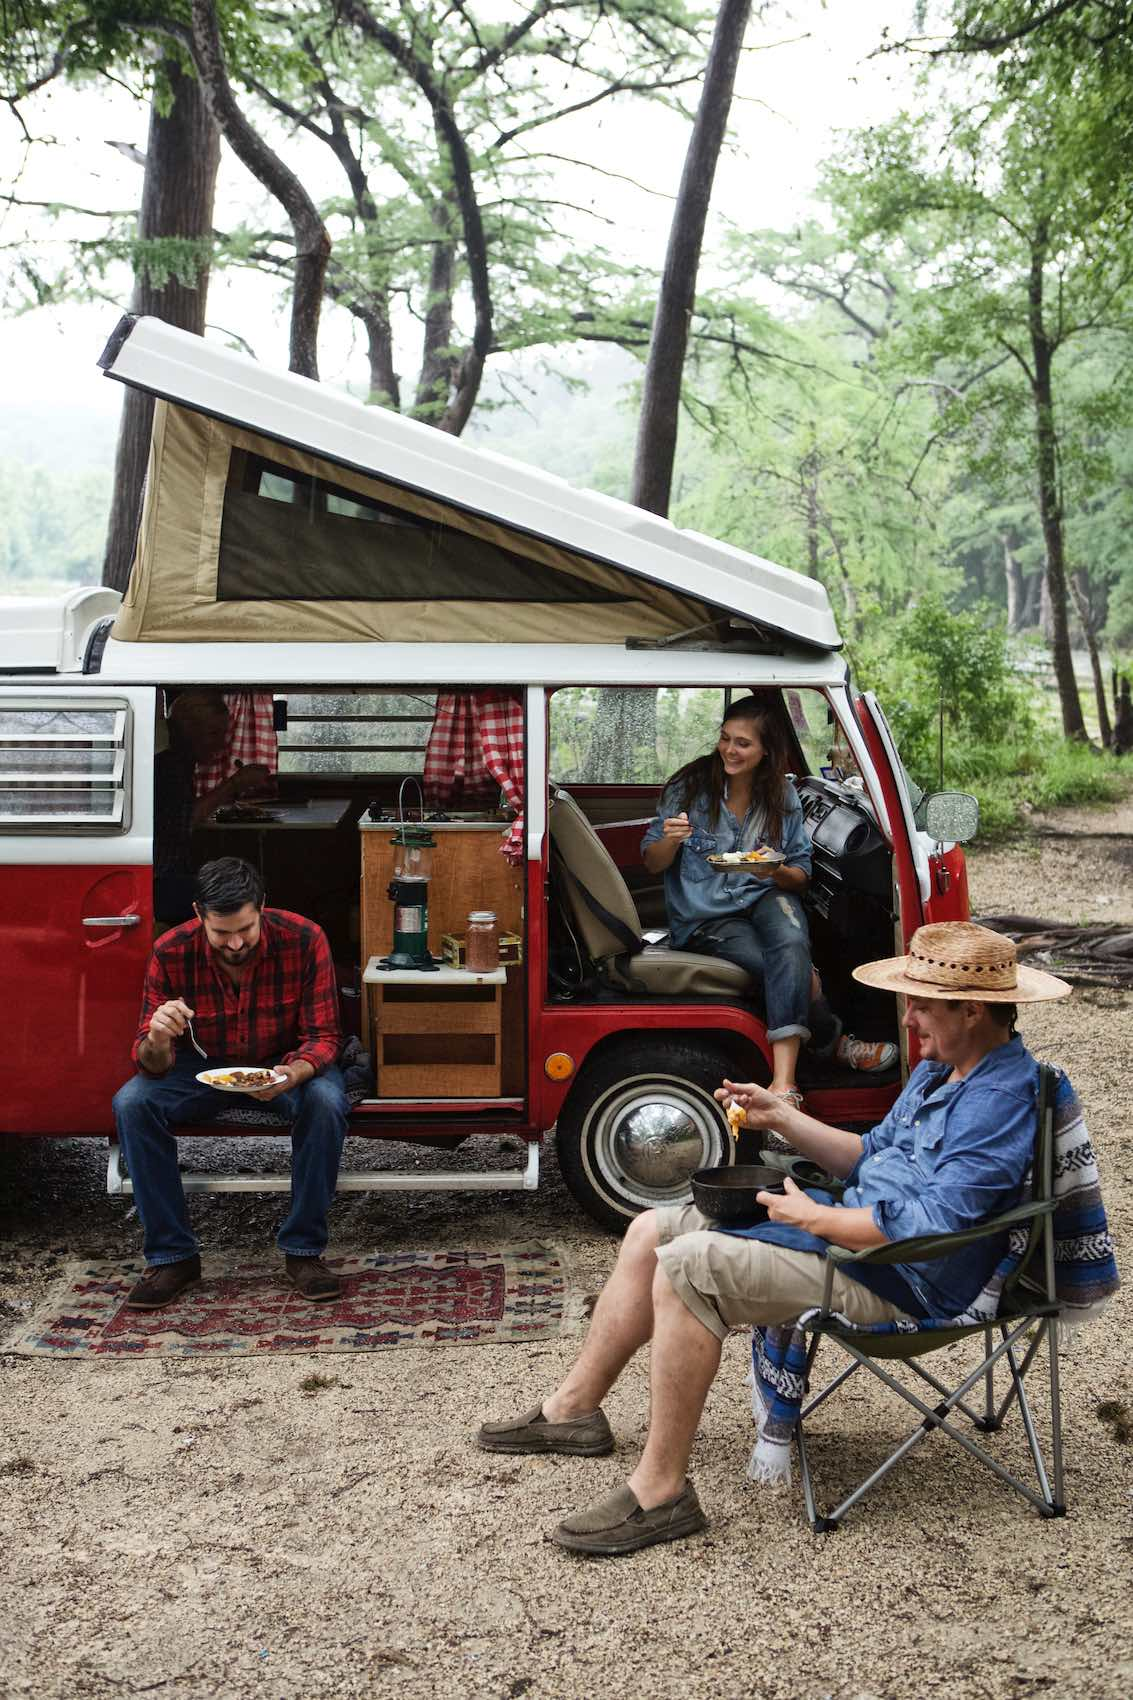 Jody Horton Photography - Friends dining outside of camper van.